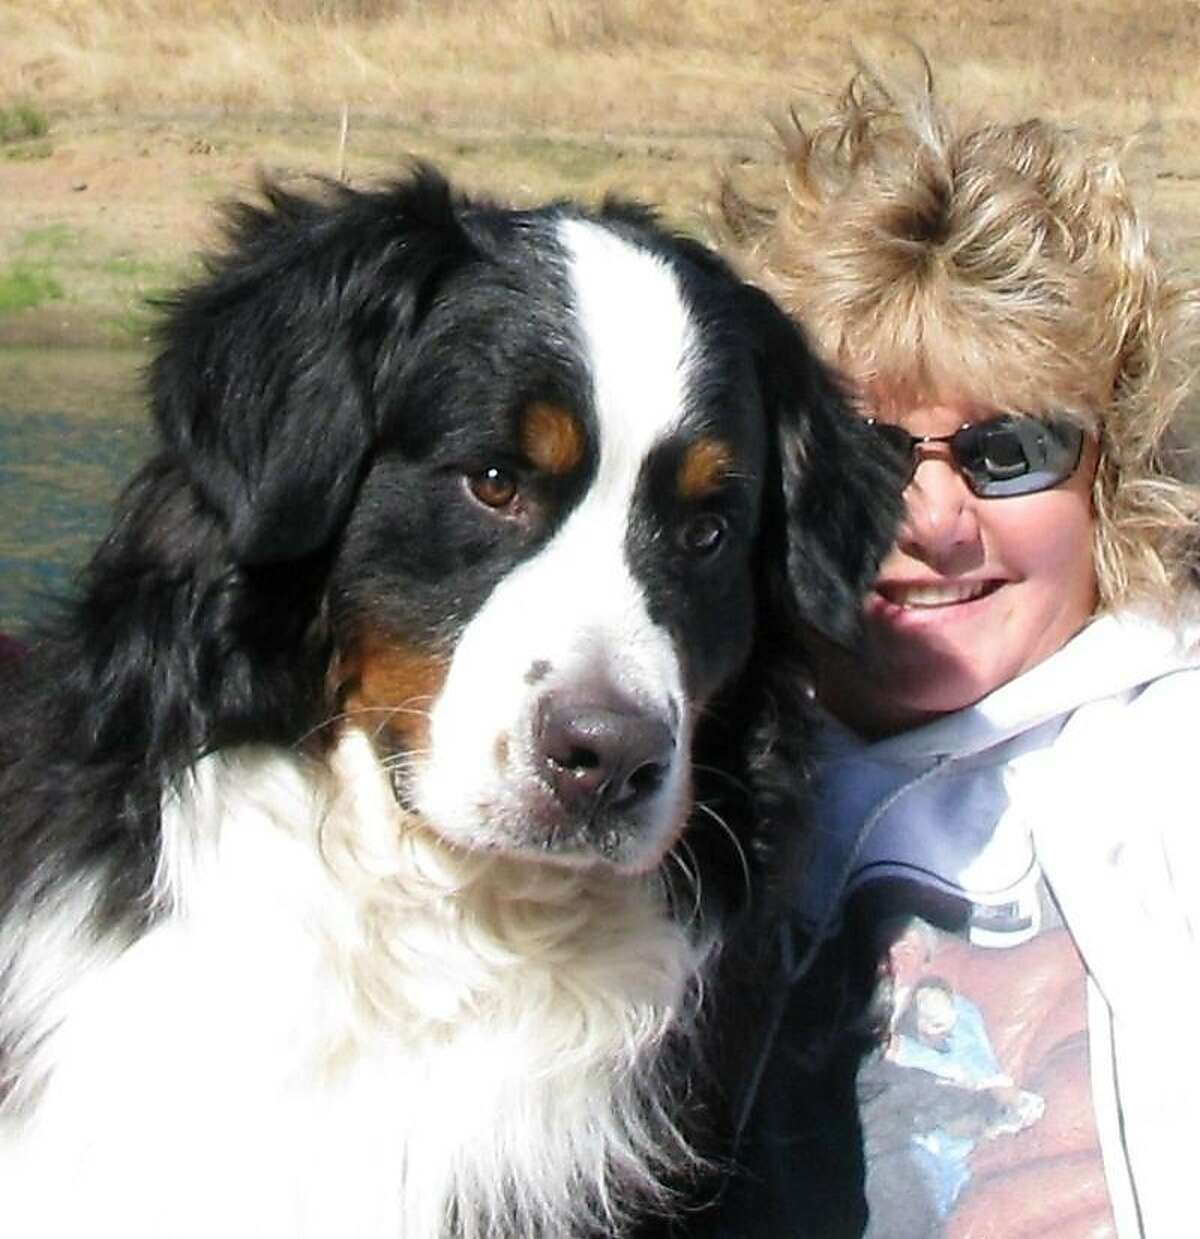 Patti Meyer breeds Bernese Mountain dogs as a hobby and also had two miniature dachsunds. One dog, AnnaBelle had a litter of four 4-week-old puppies. The 12 dogs were left behind as she was hastily evacuated from her Kenwood home on Sunday night.